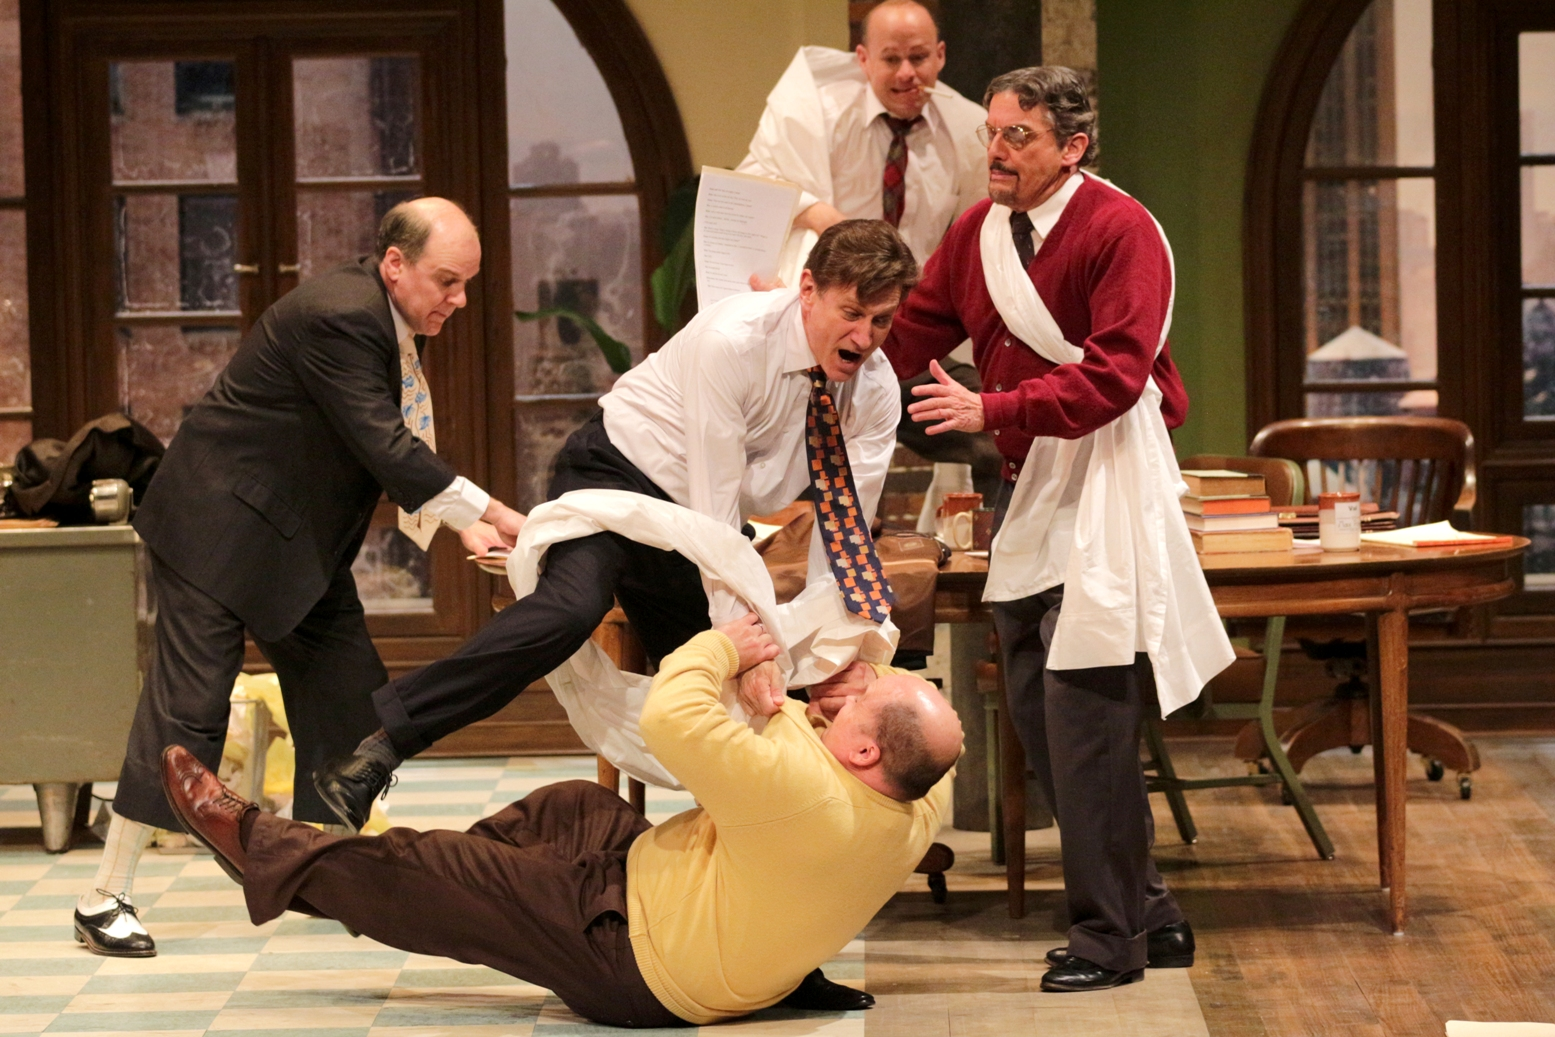 Benjamin Lloyd (on floor), Bruce Graham, David Edwards, Carl Wallnau, and George Deihl (back) in Bristol Riverside Theatre's LAUGHTER ON THE 23rd FLOOR (Photo Credit: BRT Staff)